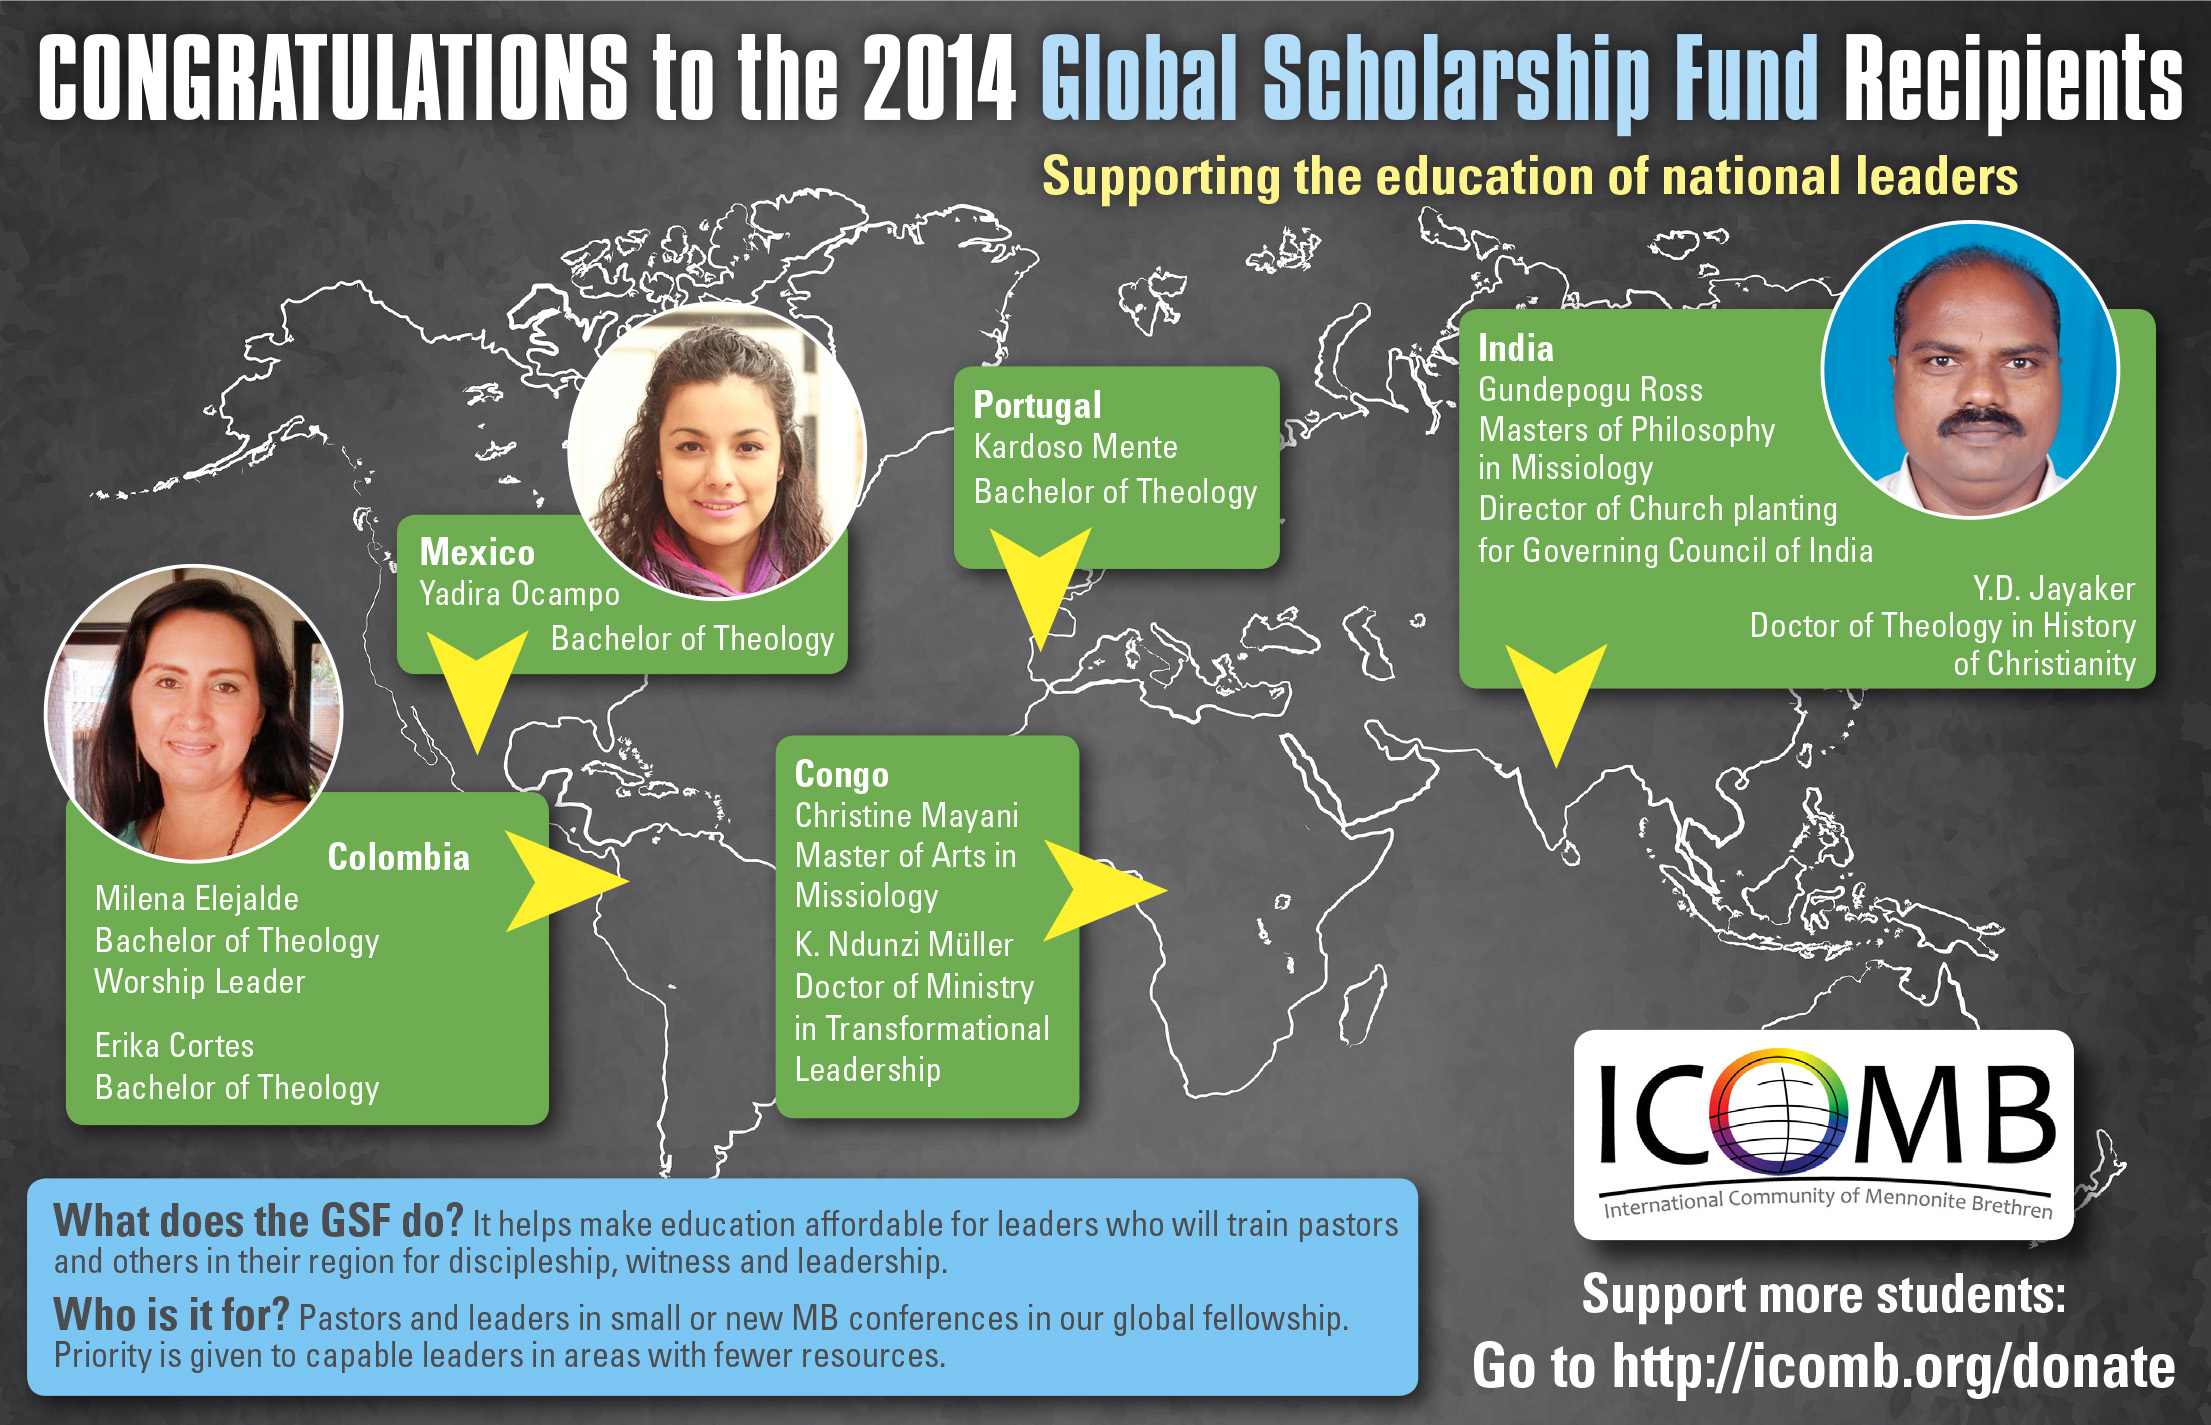 Congratulations to the 2014 Global Scholarship Fund Recipients!